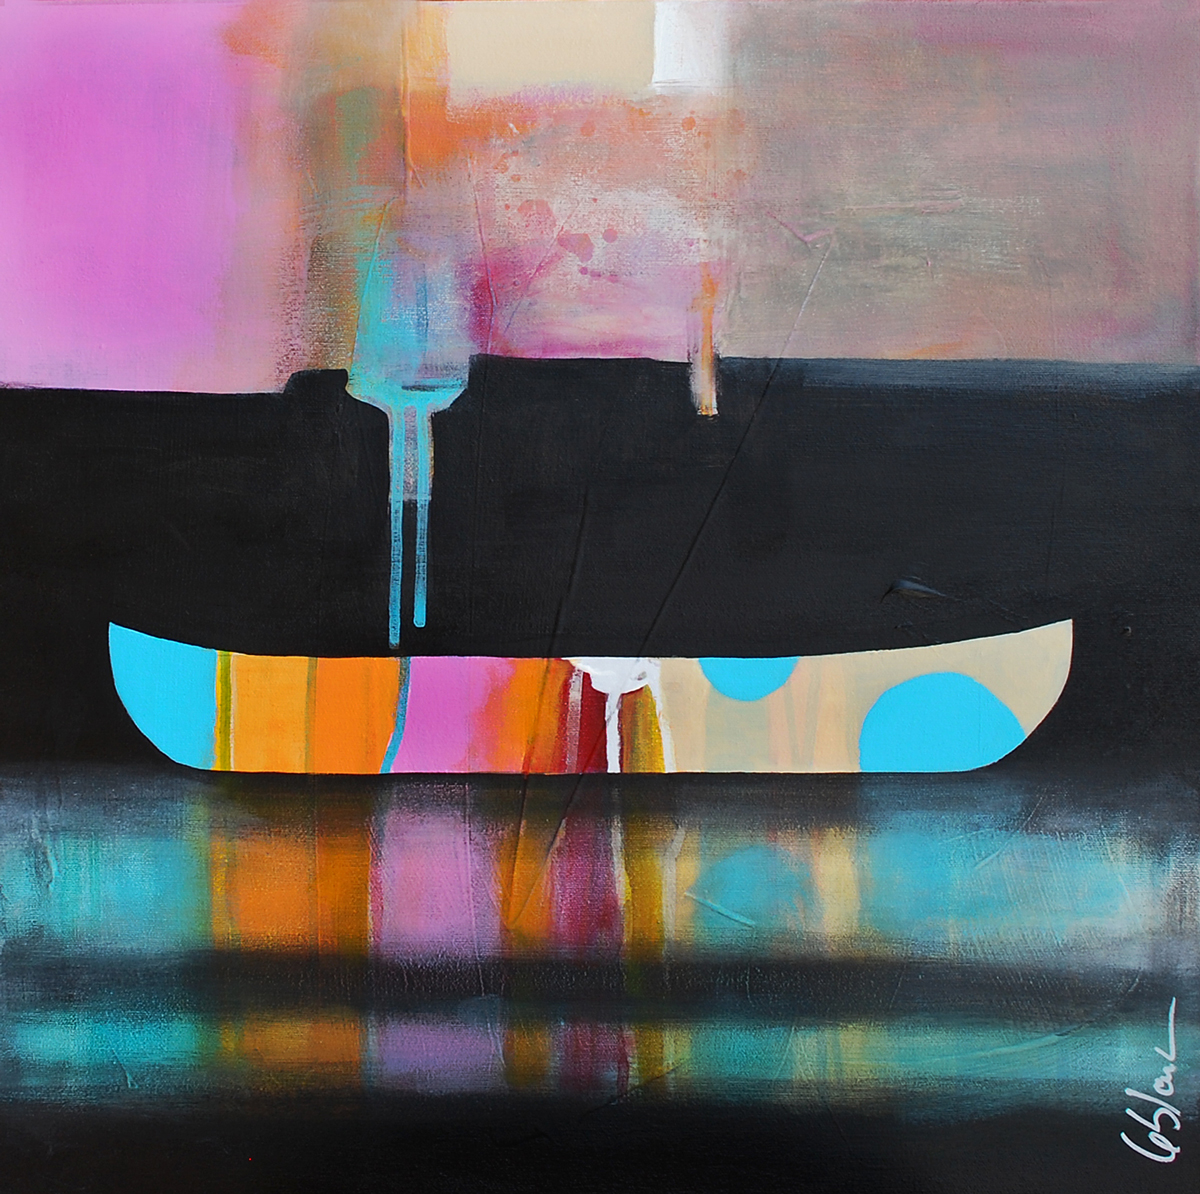 L'équilibre des poids, mixed media canoe painting by Sylvain Leblanc | Effusion Art Gallery + Cast Glass Studio, Invermere BC